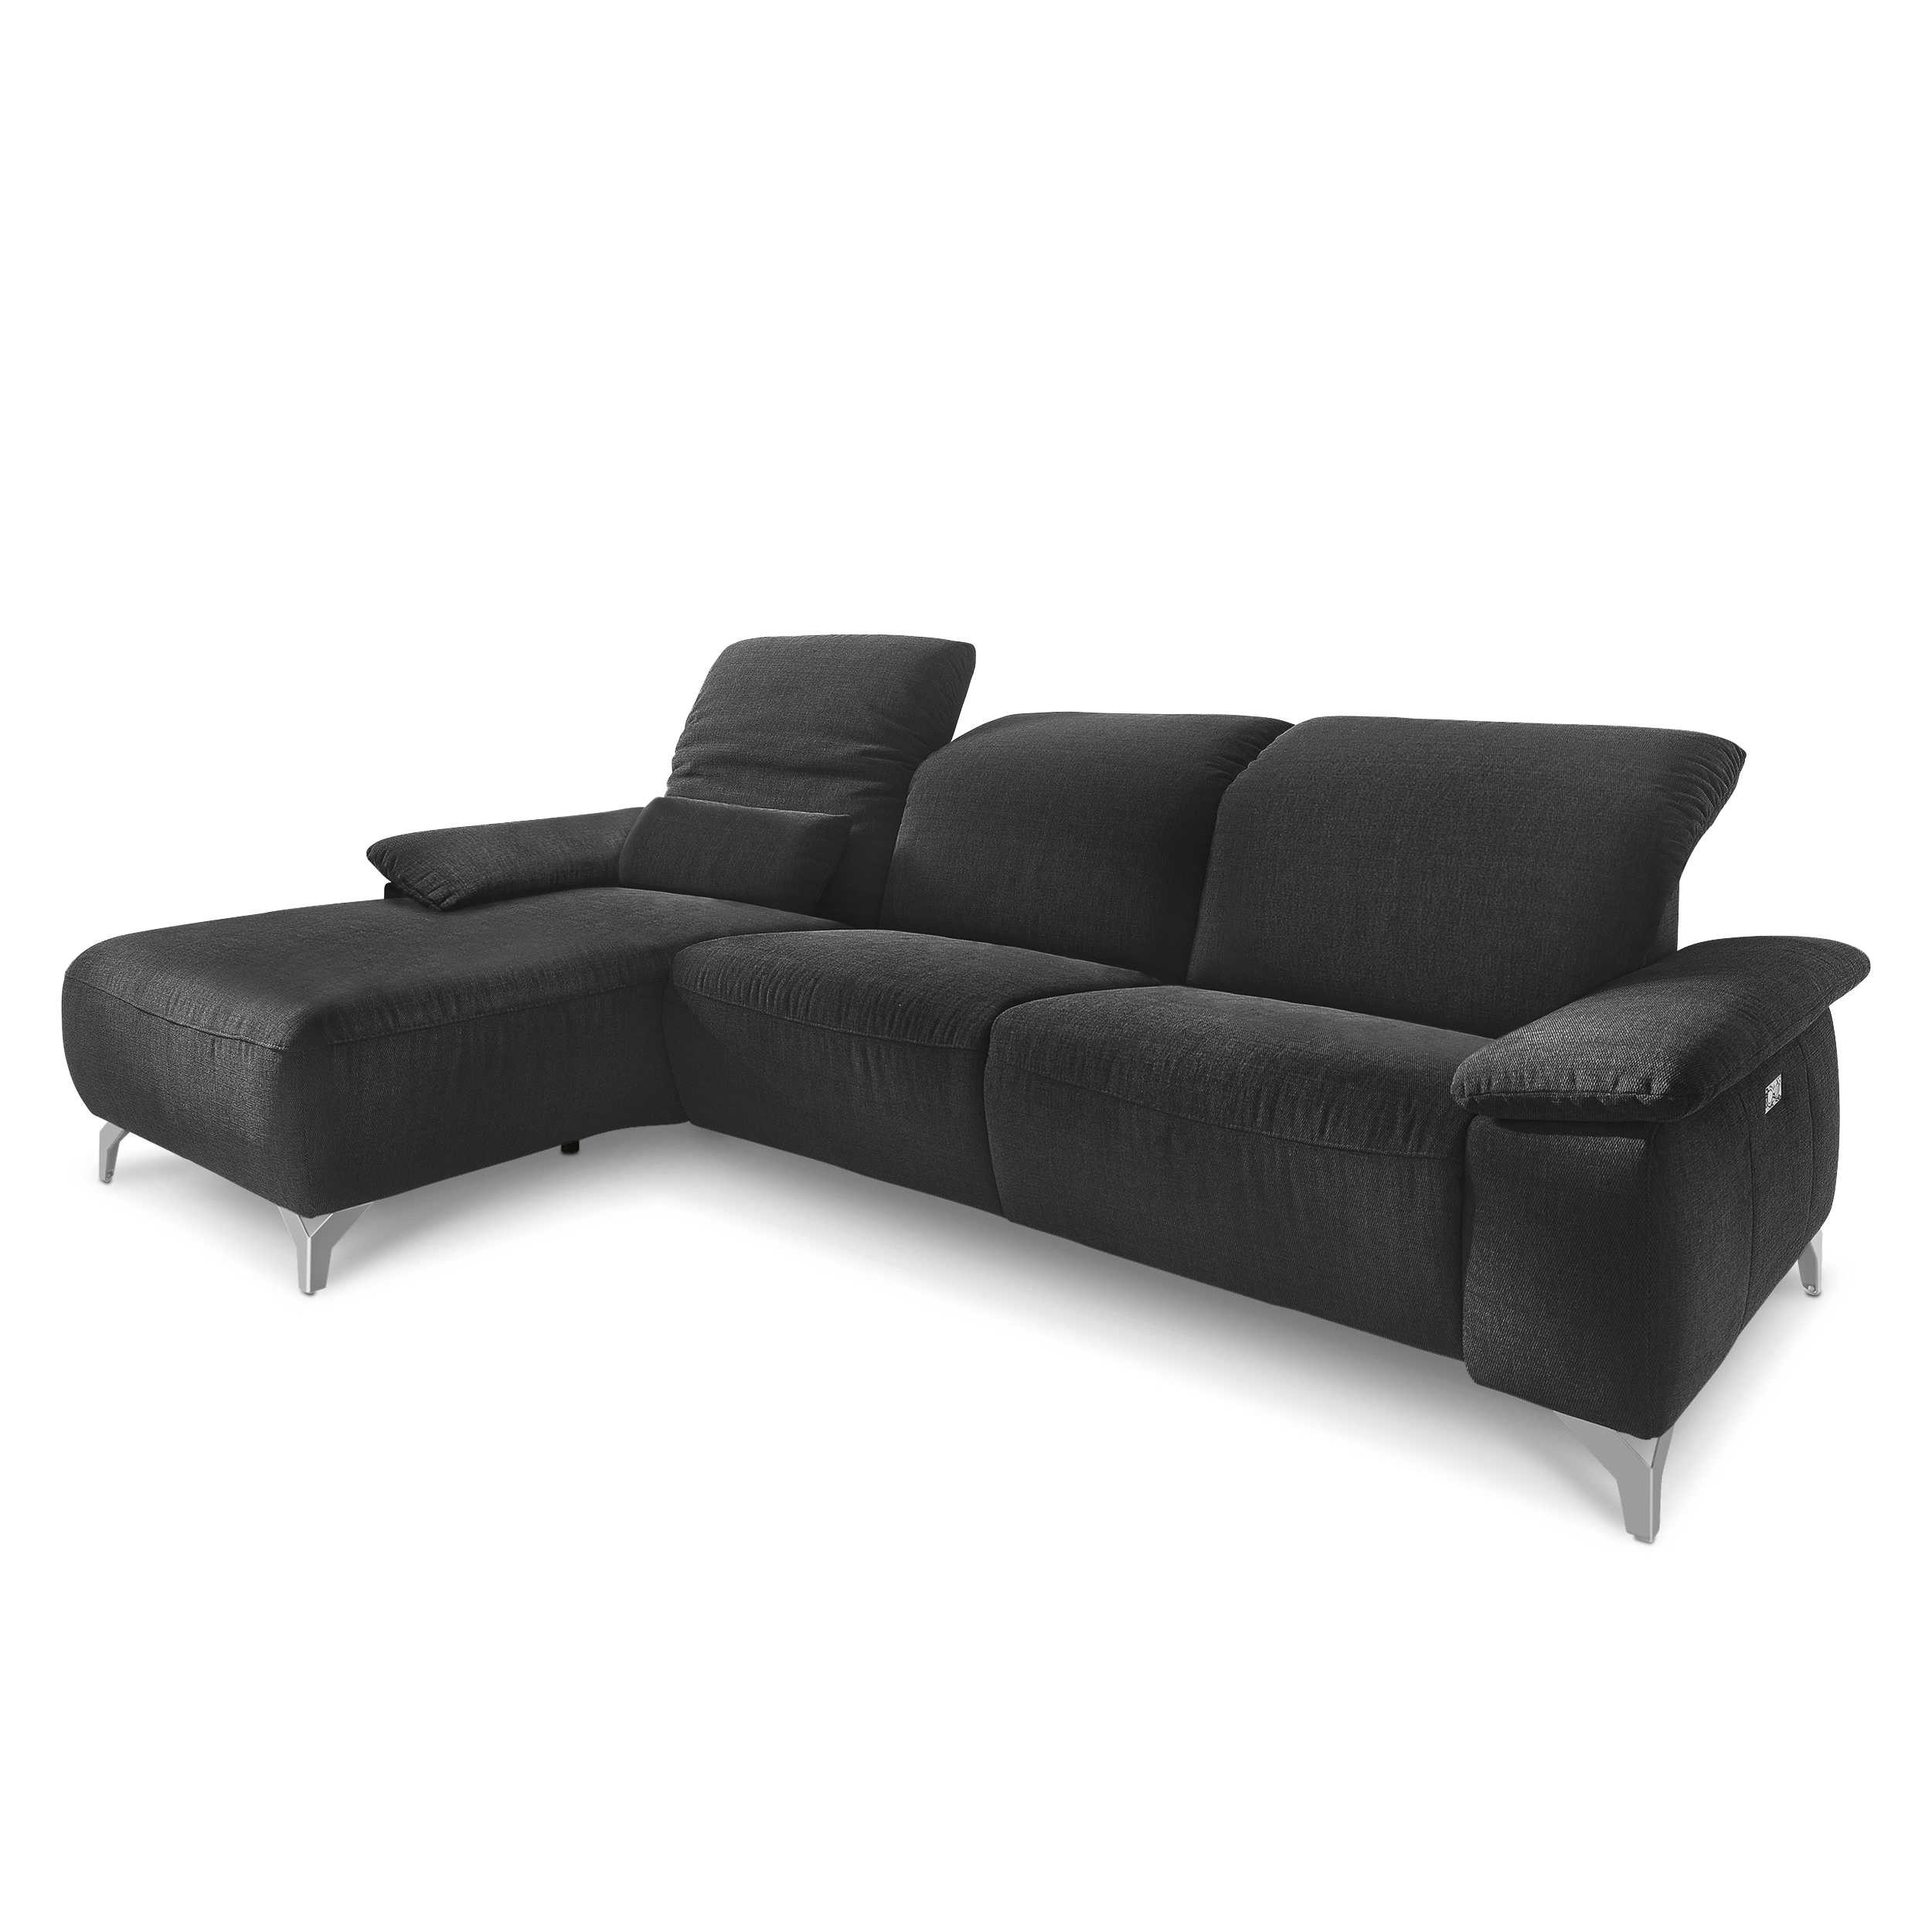 Musterring ecksofa mr 370 anthrazit stoff online kaufen for Ecksofa weich